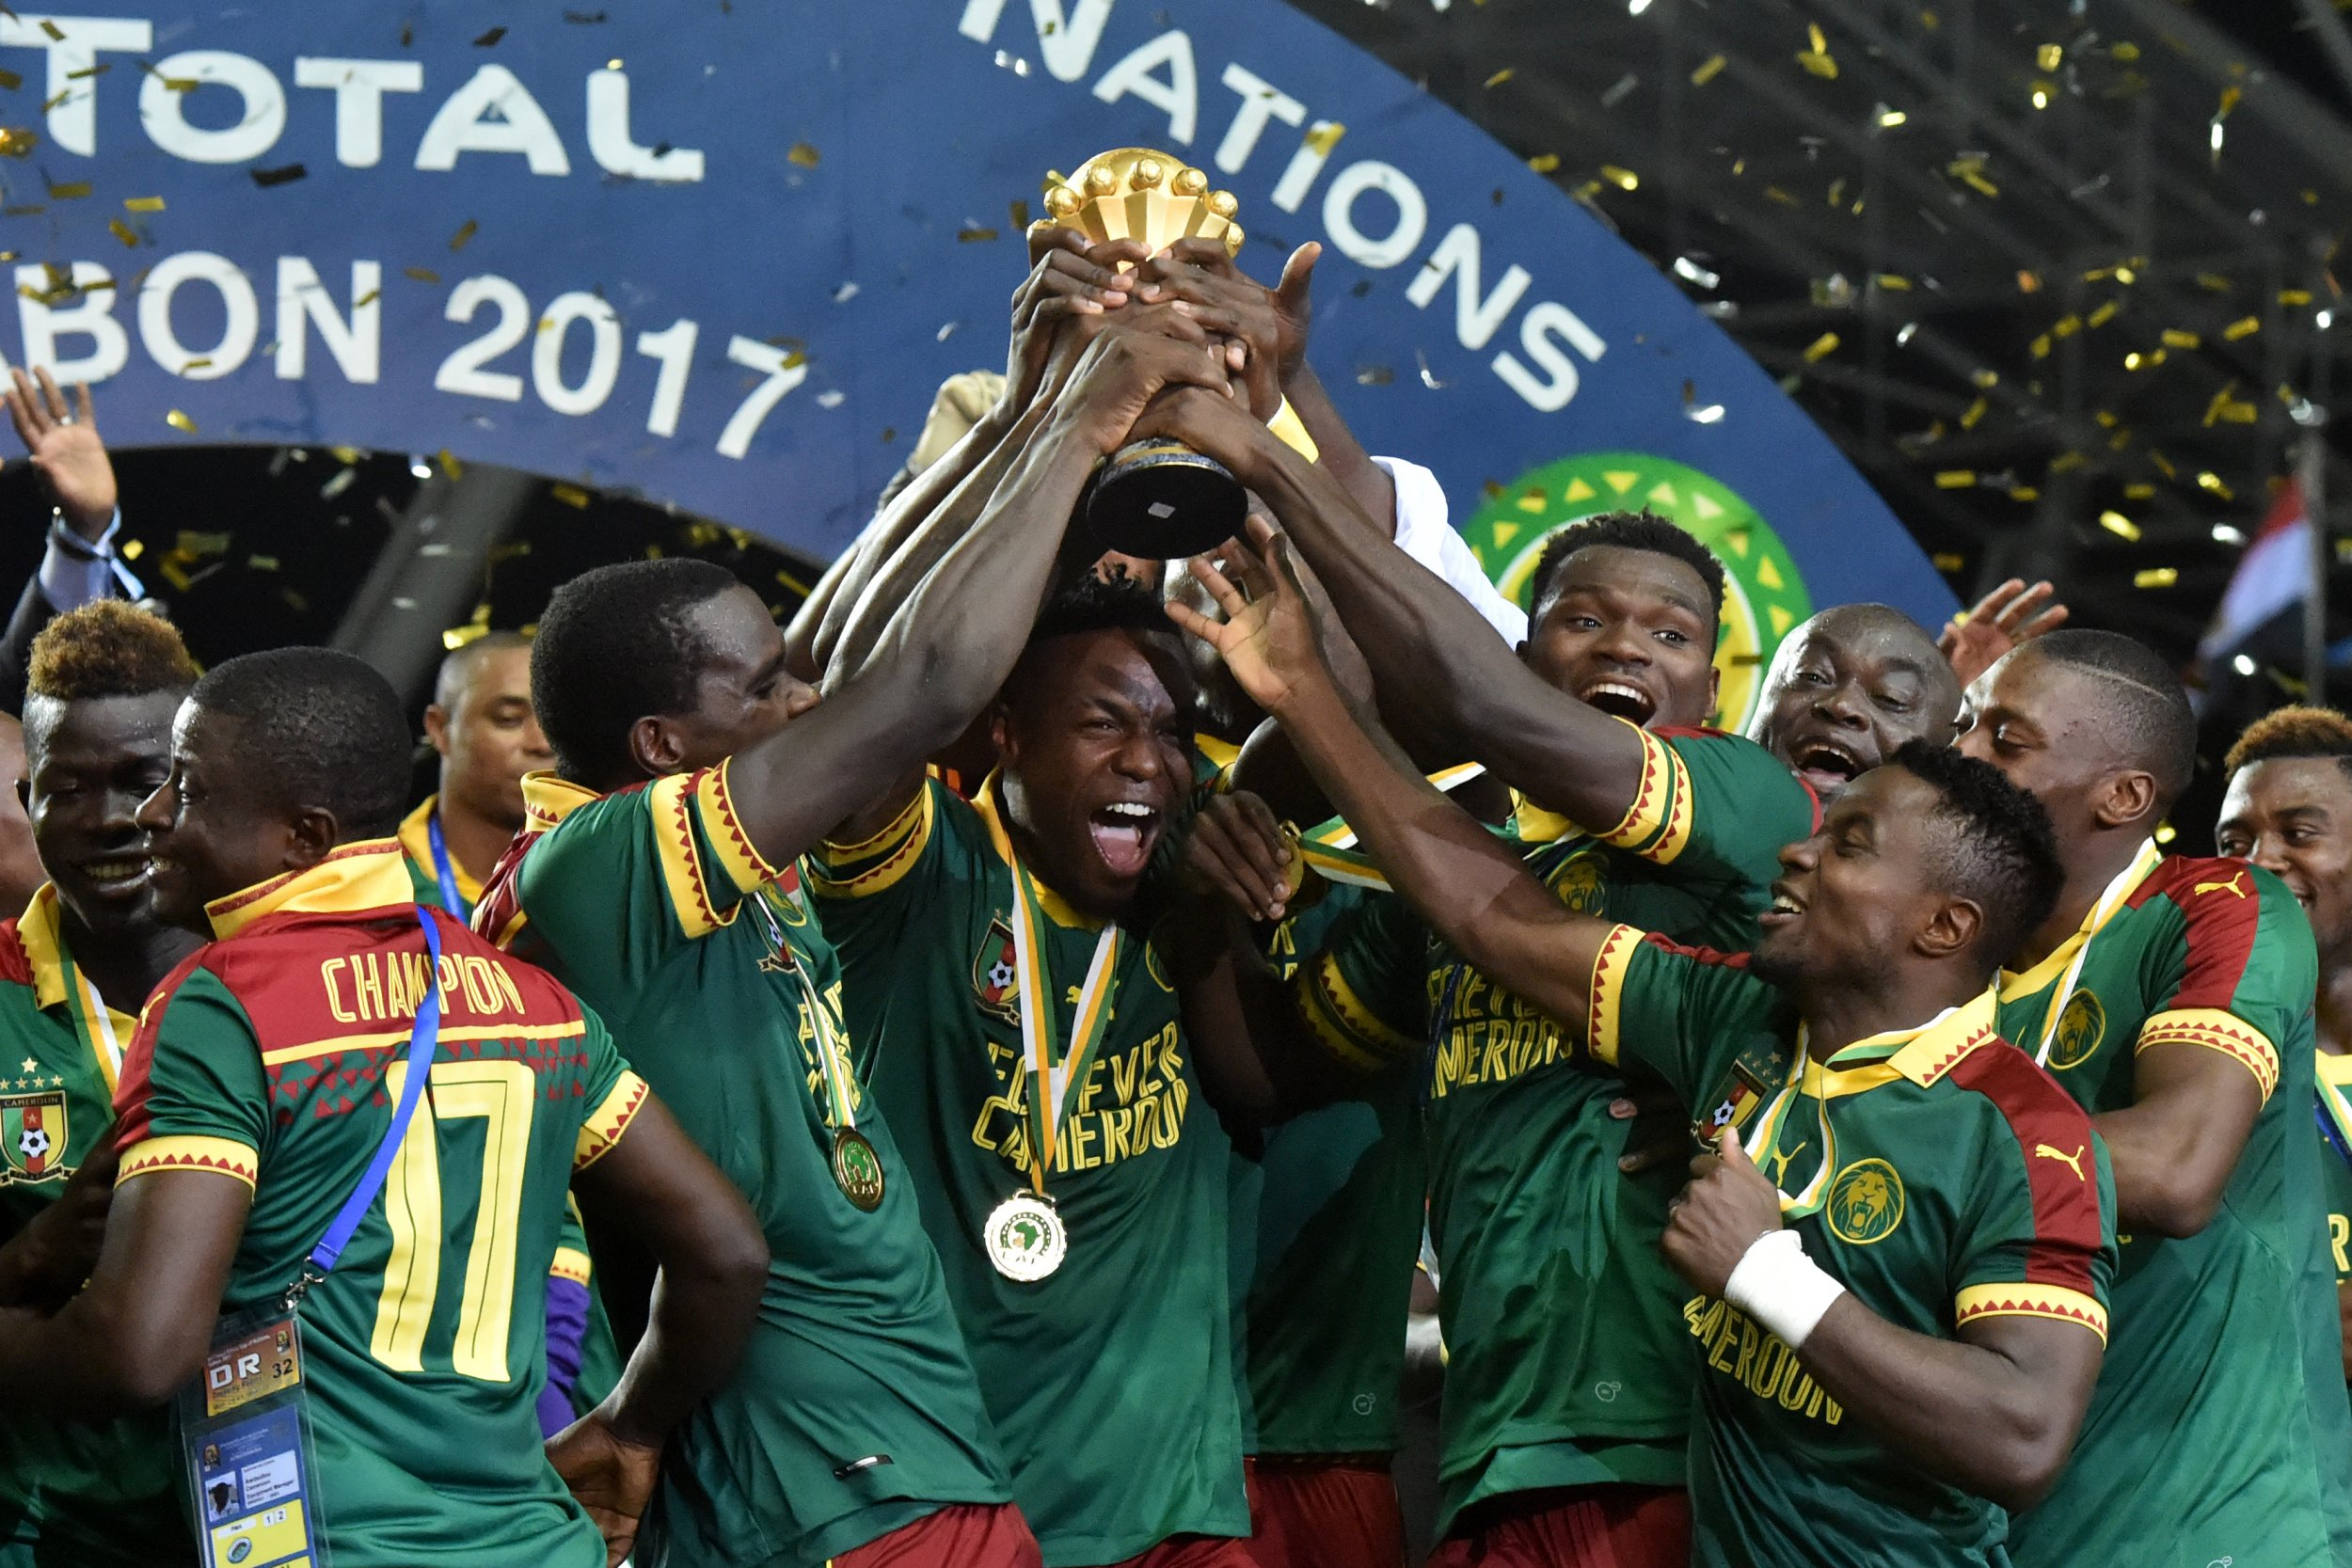 Cameroon AFCON 2017